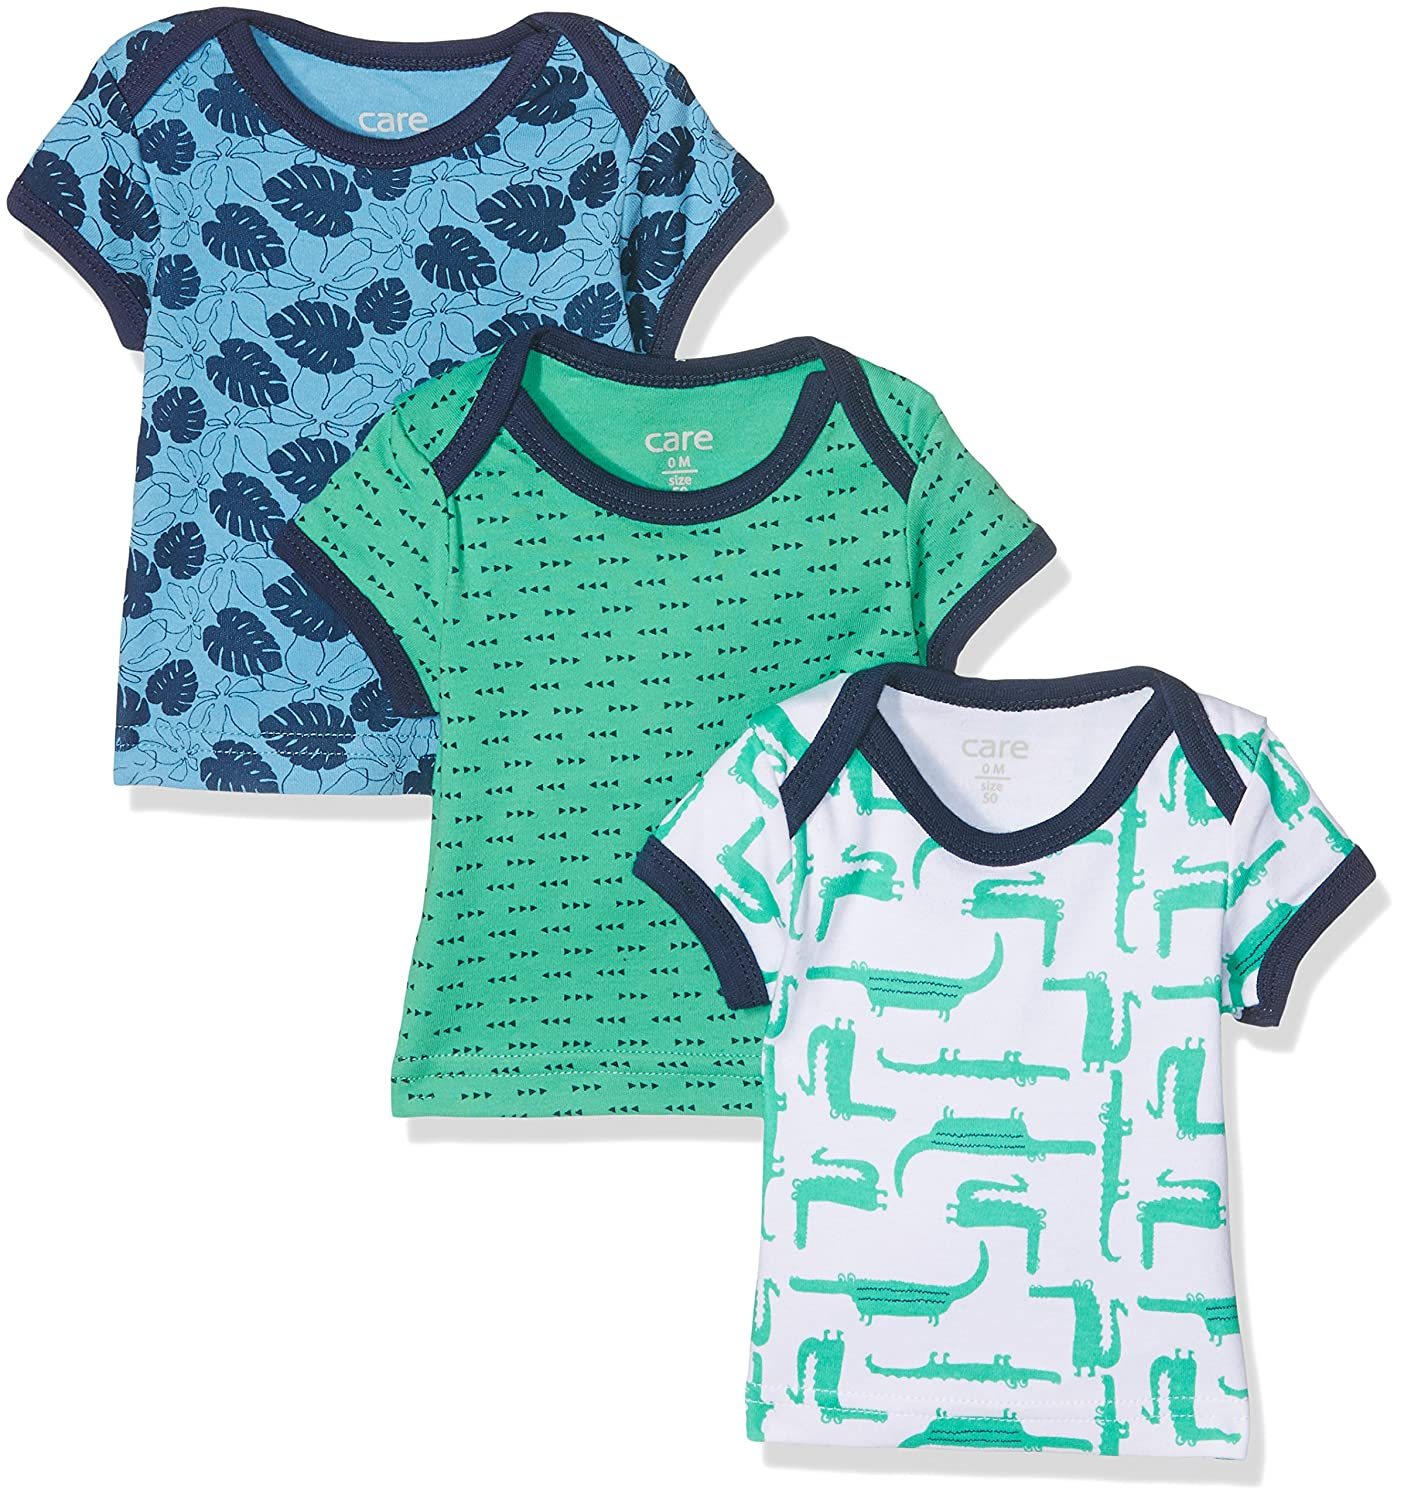 Care Baby-Jungen T-Shirt Bard, 3er Pack Brands 4 Kids A/S 550138